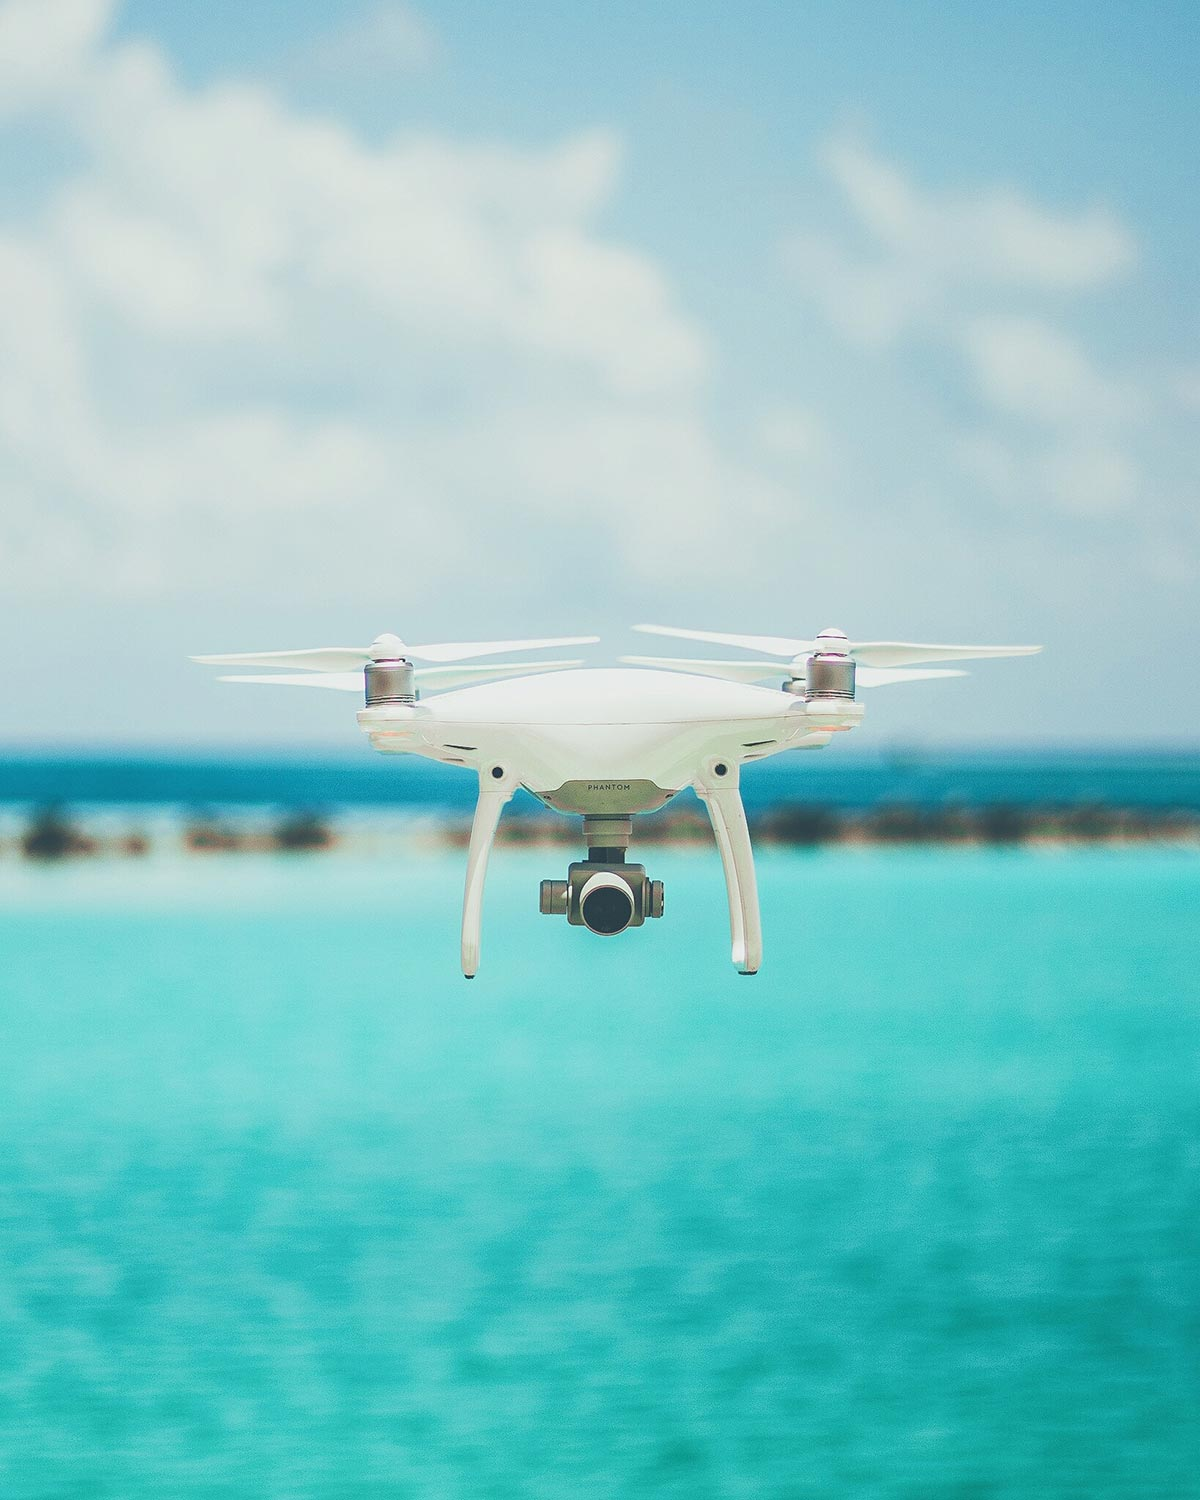 5 Things You Need to Know Before Inviting that Drone